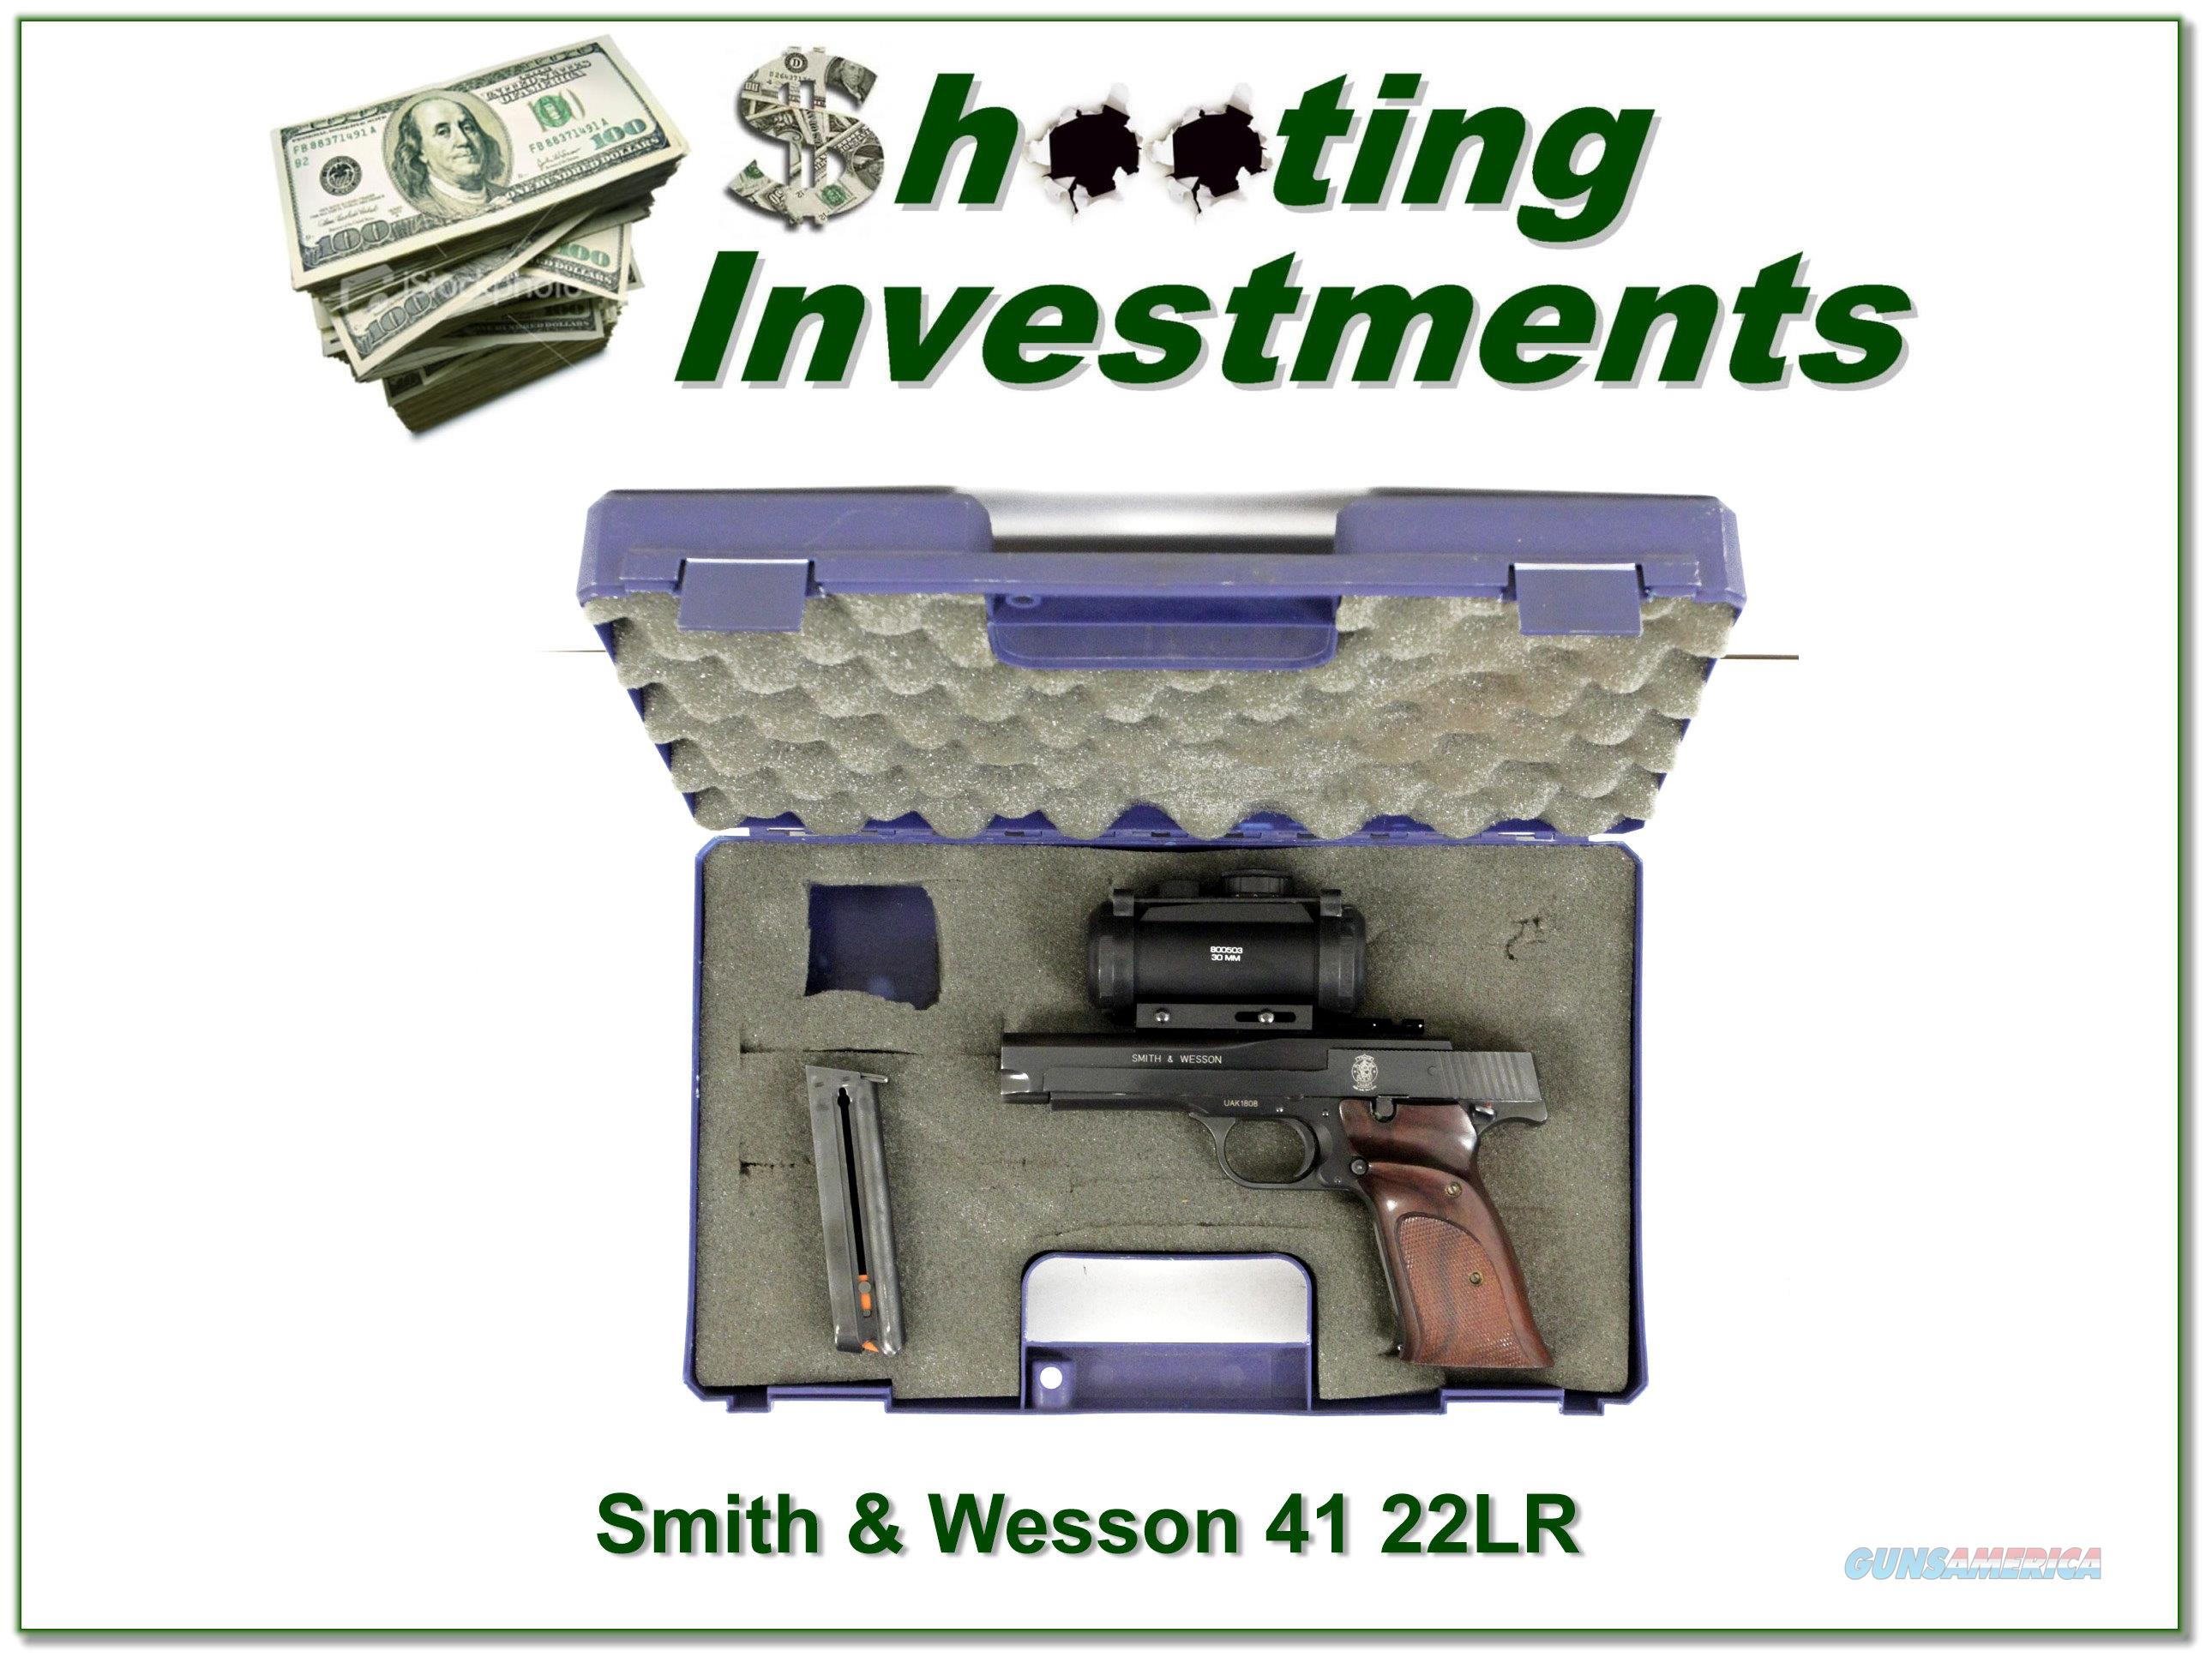 Smith & Wesson Model 41 5in scope barrel and scope in case  Guns > Pistols > Smith & Wesson Pistols - Autos > .22 Autos